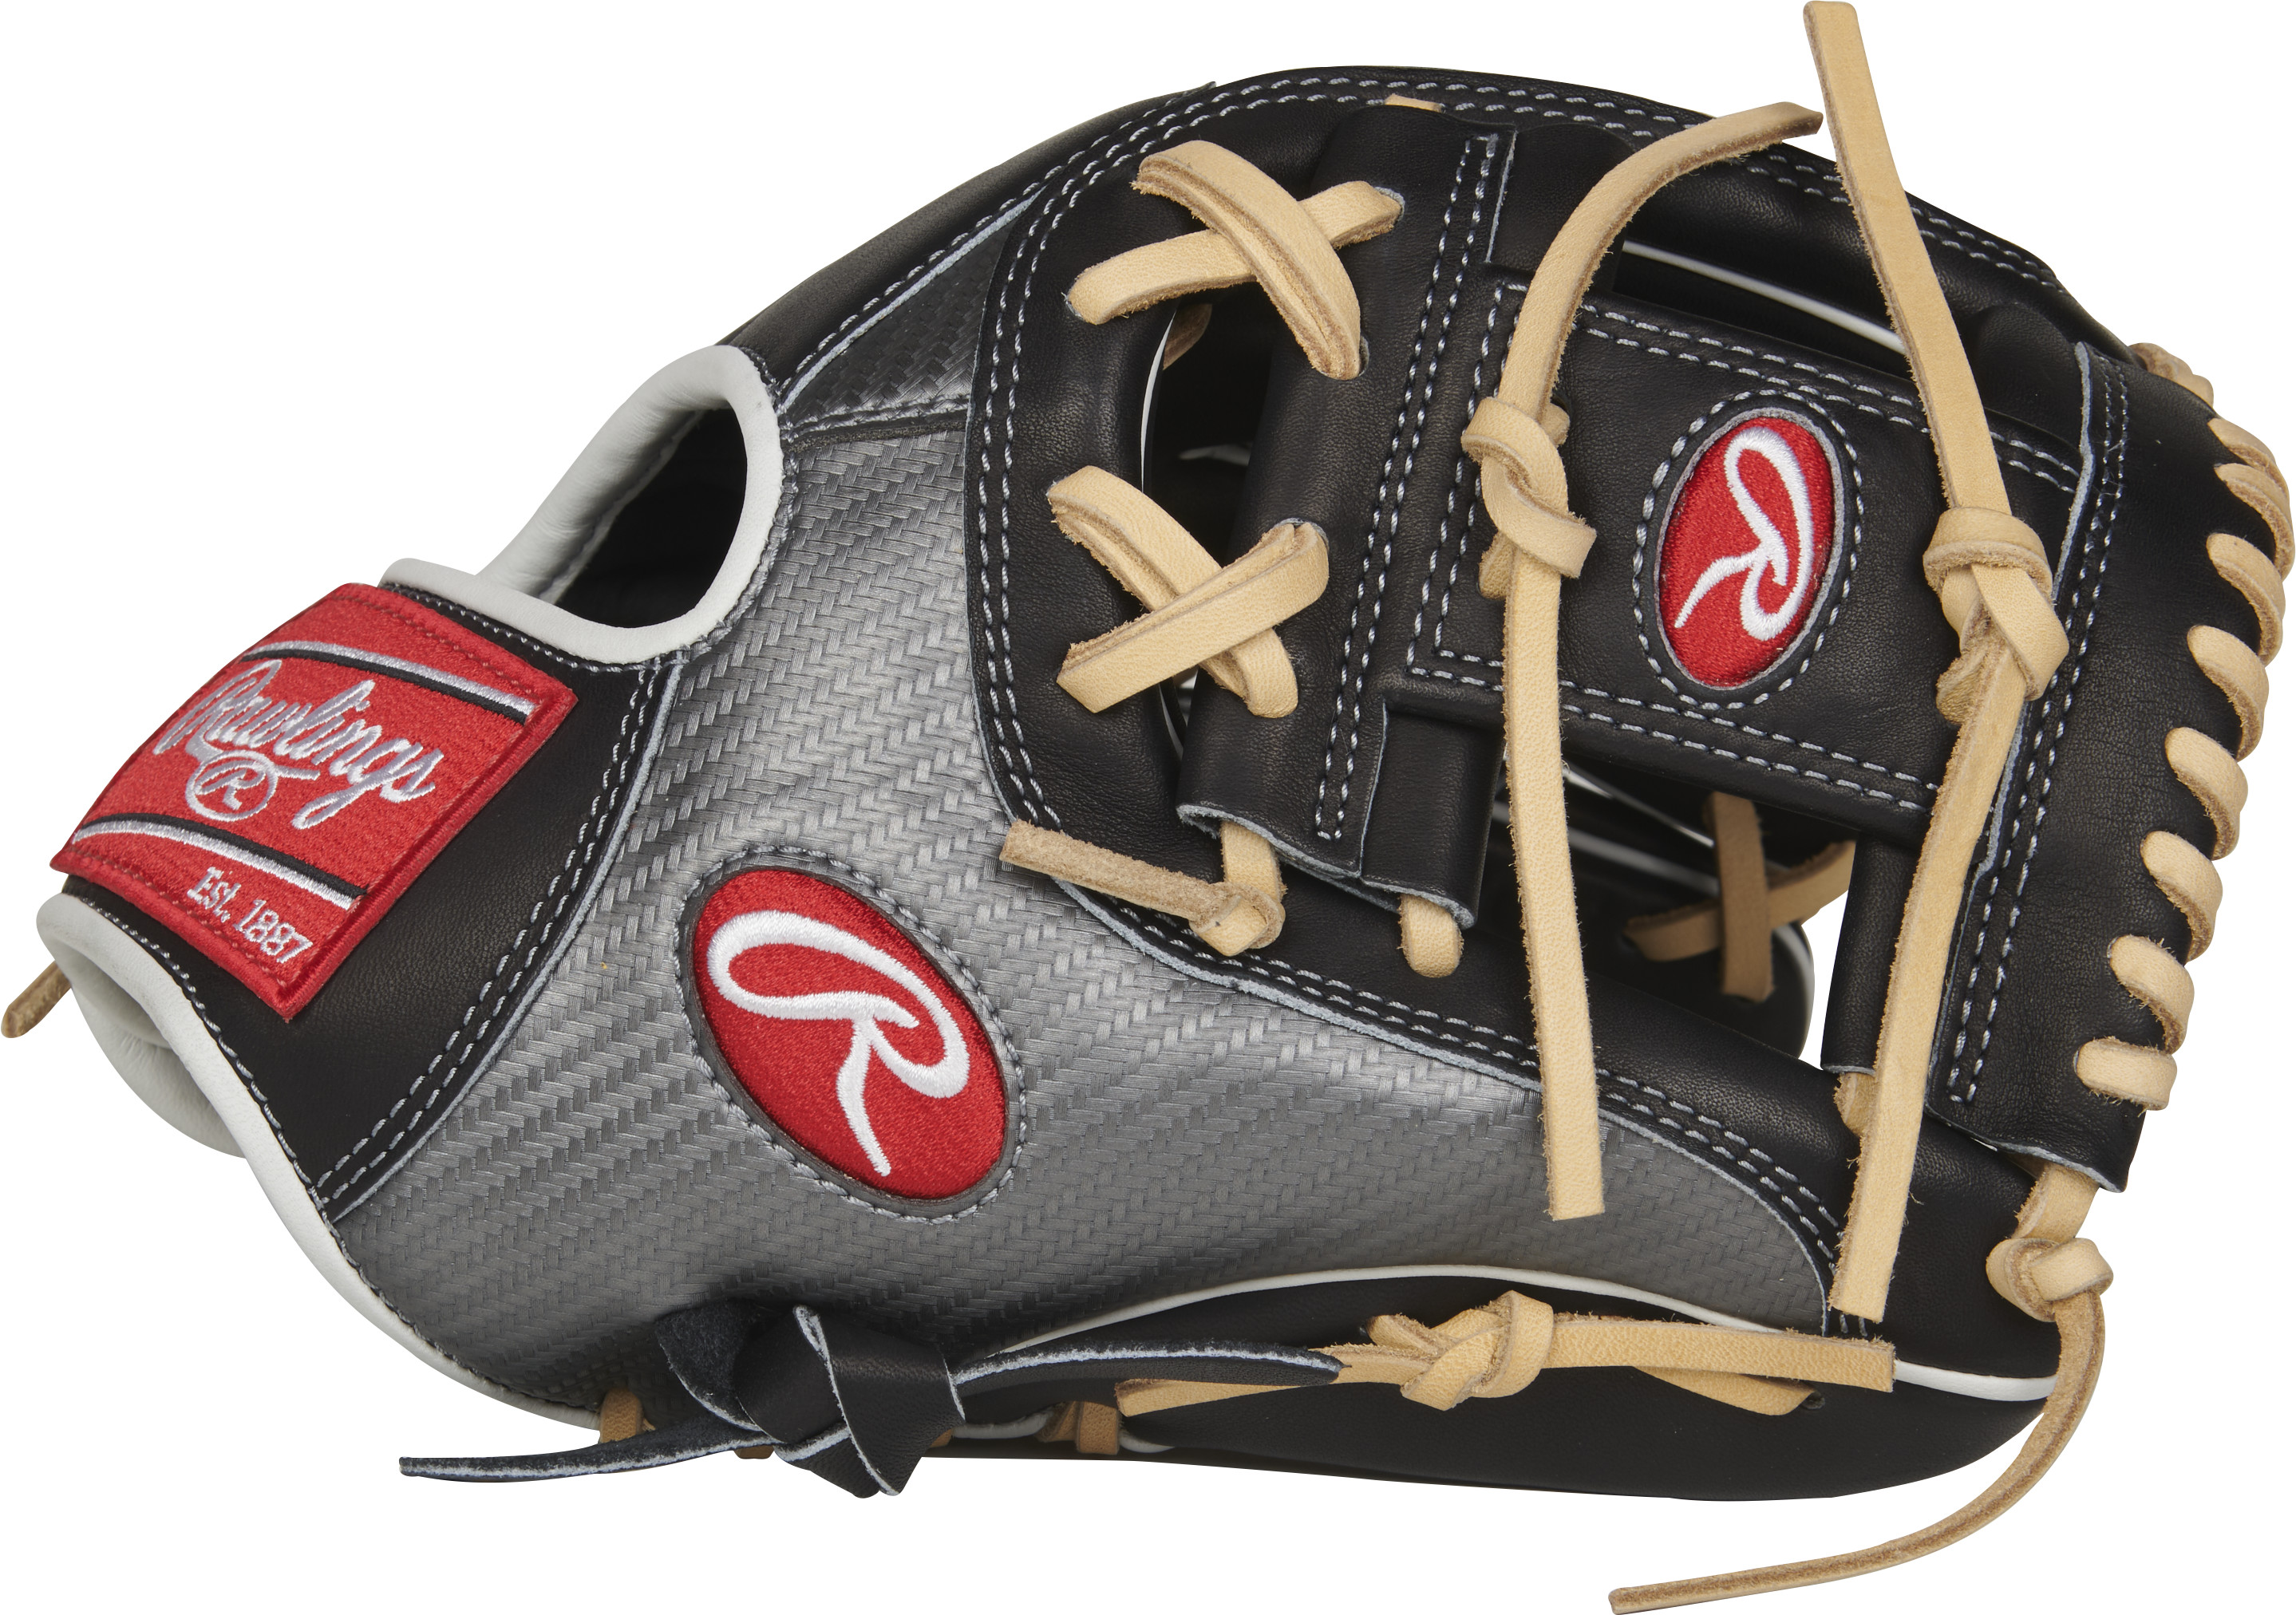 http://www.bestbatdeals.com/images/gloves/rawlings/PRO204-2BCF-3.jpg